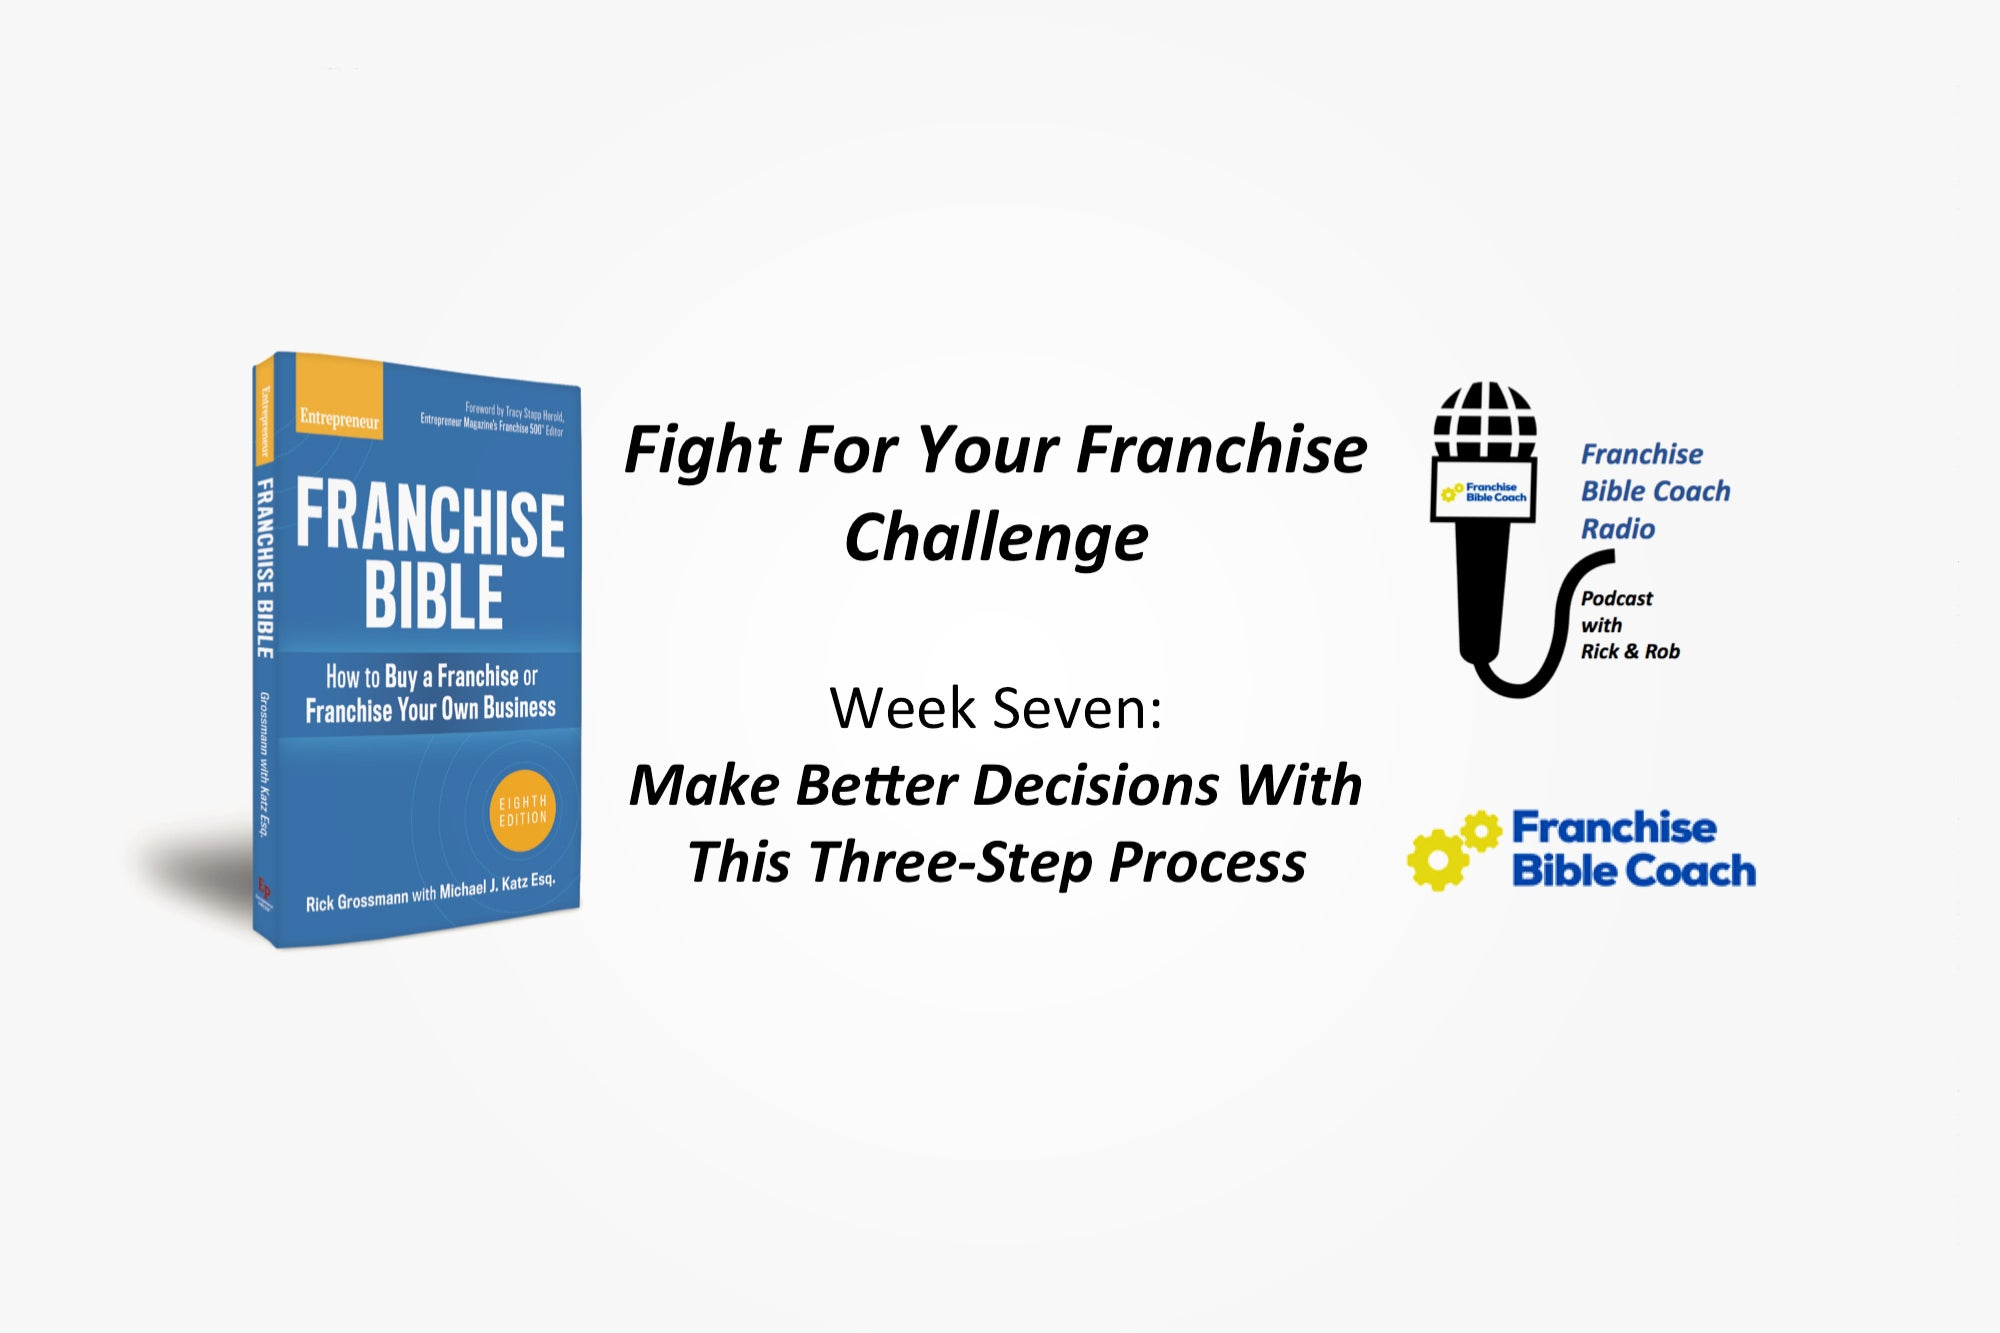 Fight for Your Franchise Challenge, Week 7: Make Better Decisions With the Three Decision Lens Strategy